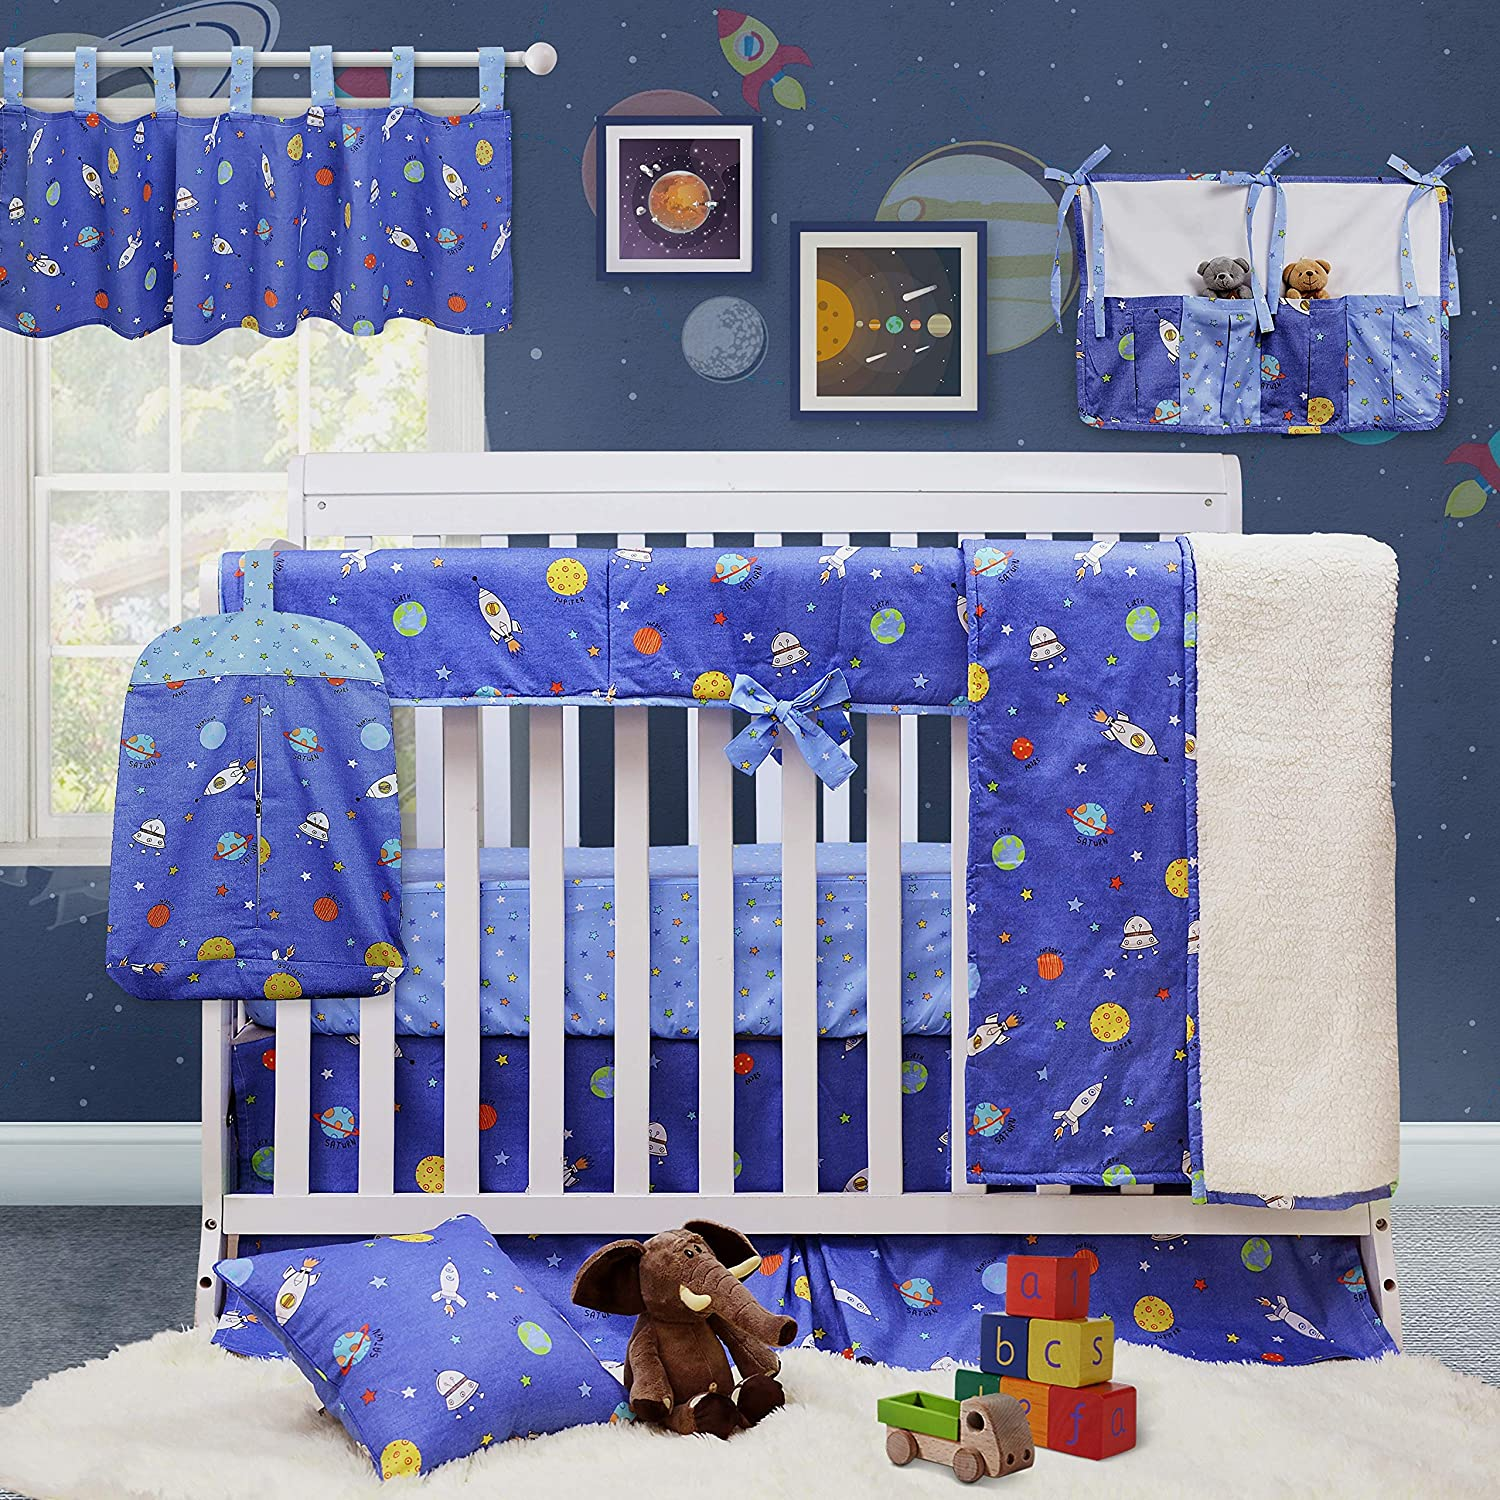 Brandream Crib Bedding Sets for Boys Galaxy Space Theme Bedding 100% Soft Cotton Navy Blue Baby Bedding Crib Set with Long Crib Rail Cover, 9 Pieces